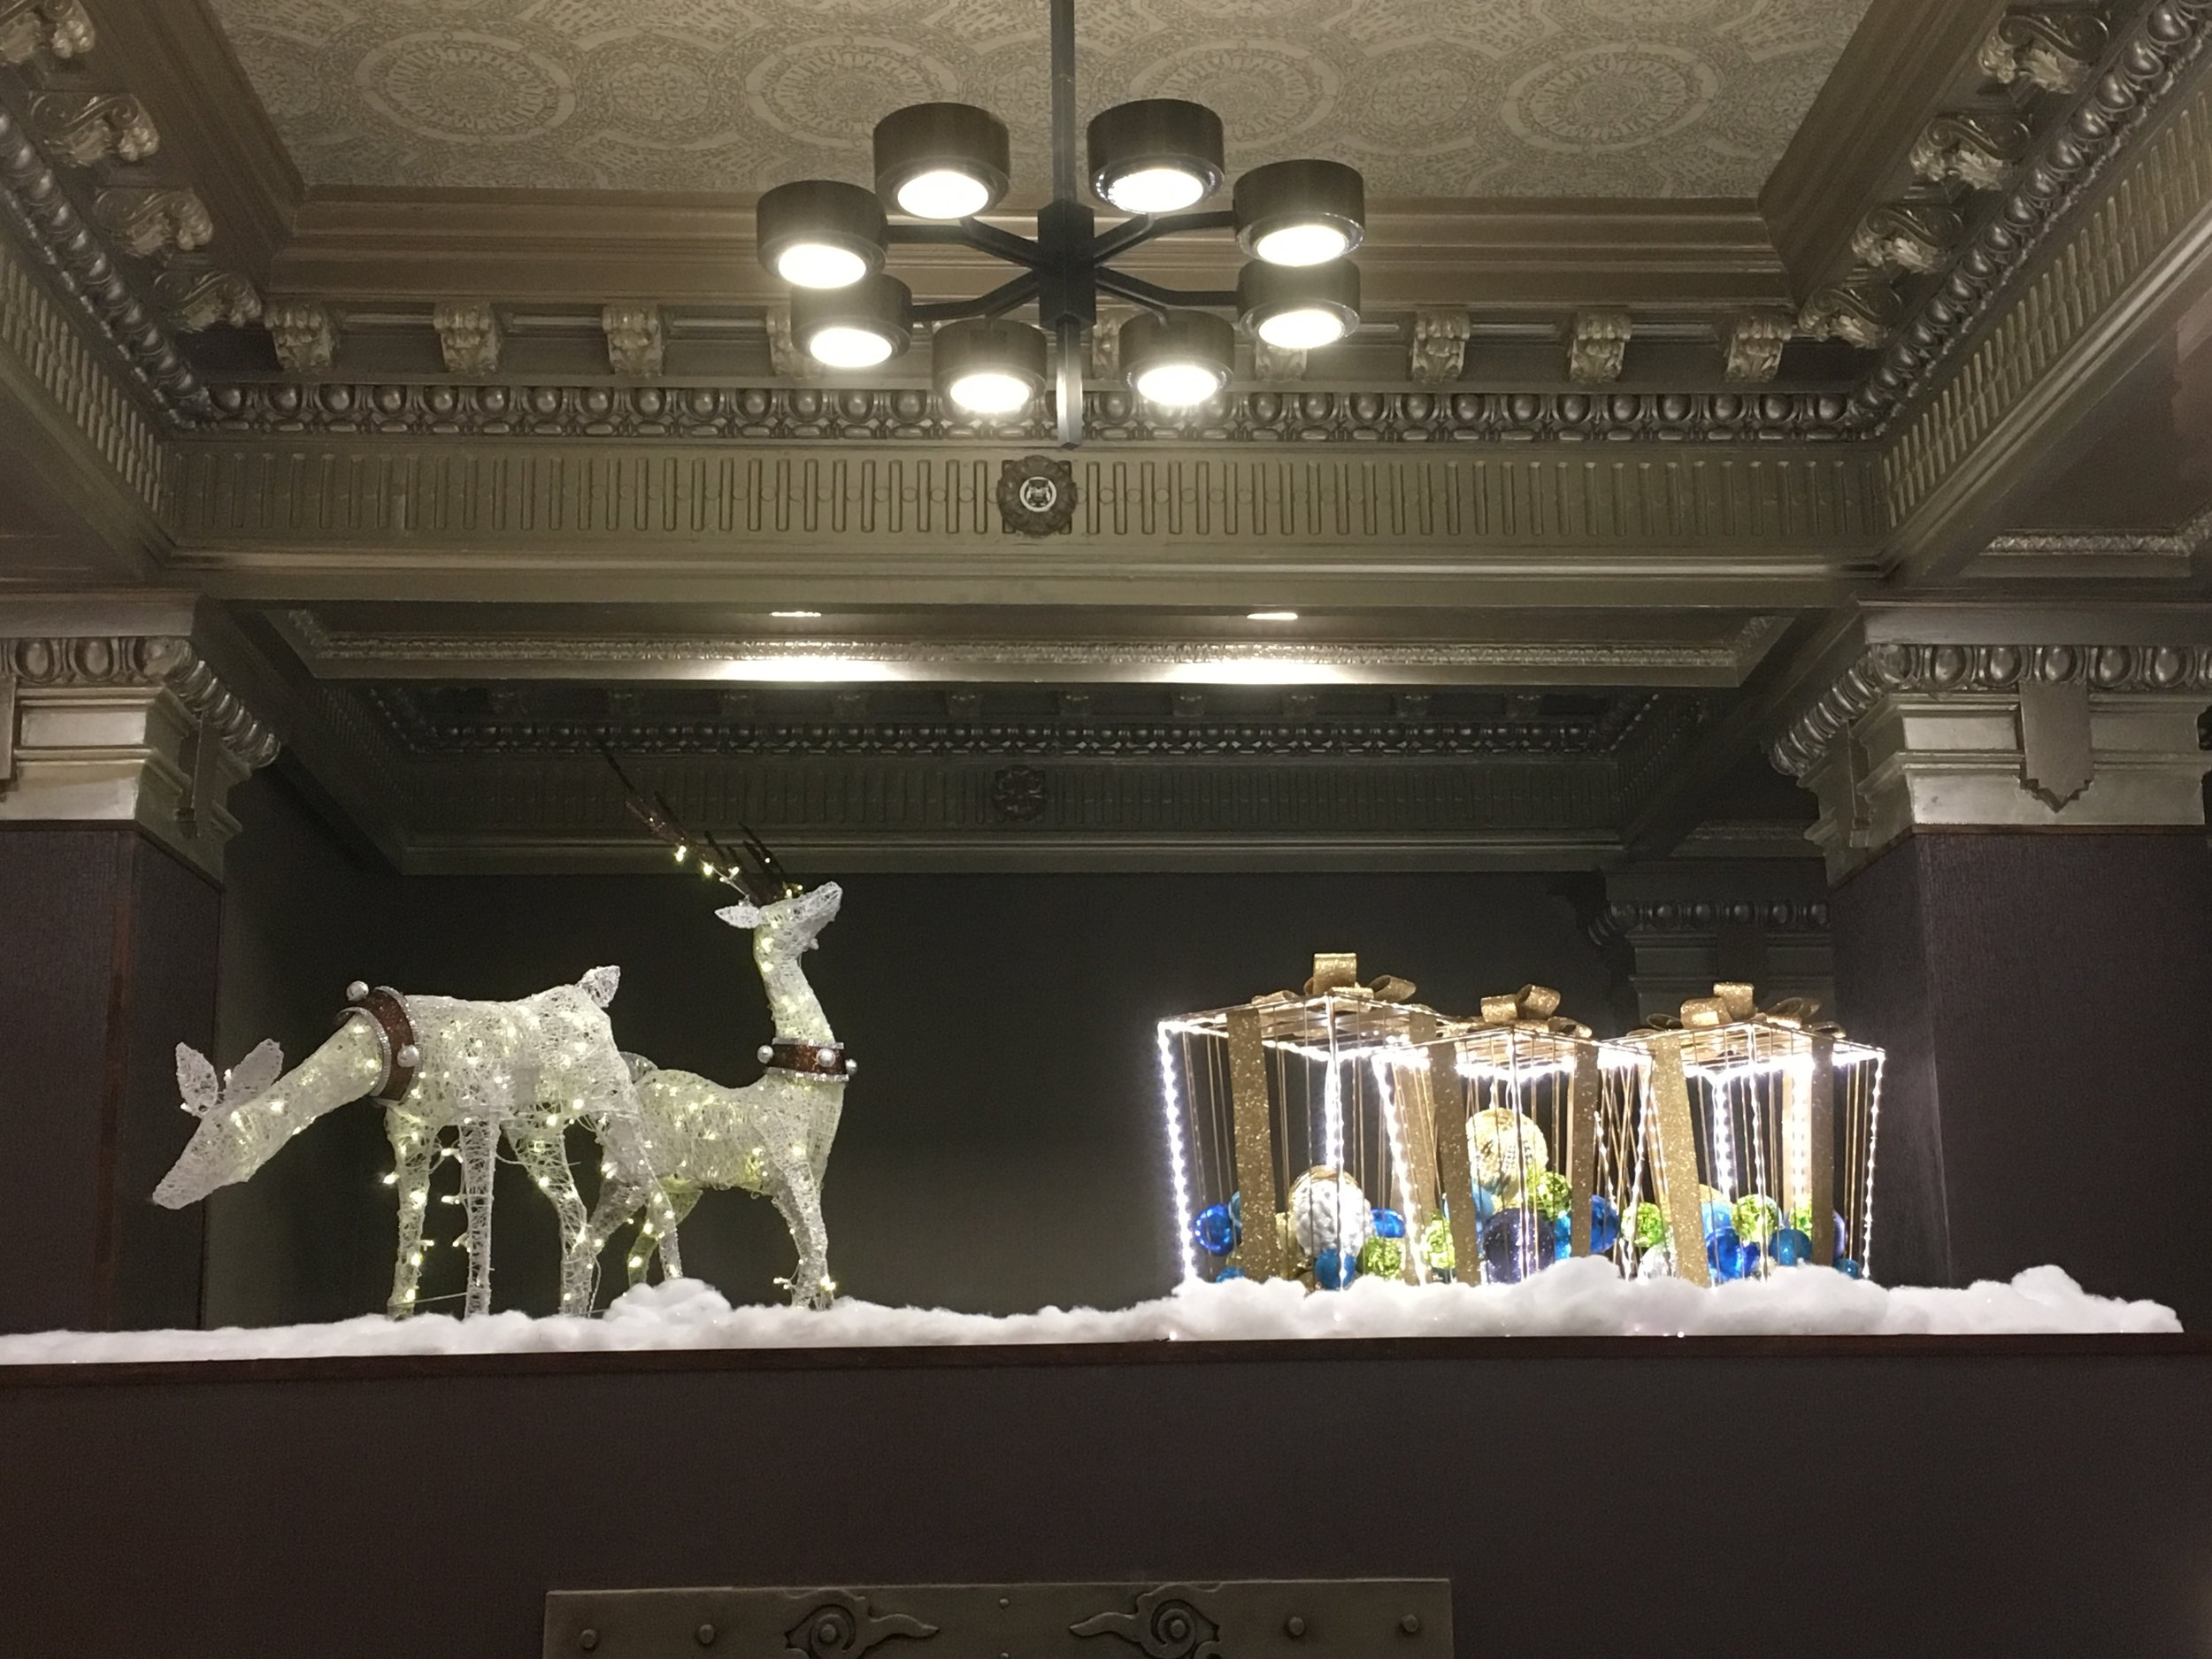 Above the Vault. Prelit LED figurines , ornaments, lights and faux snow.